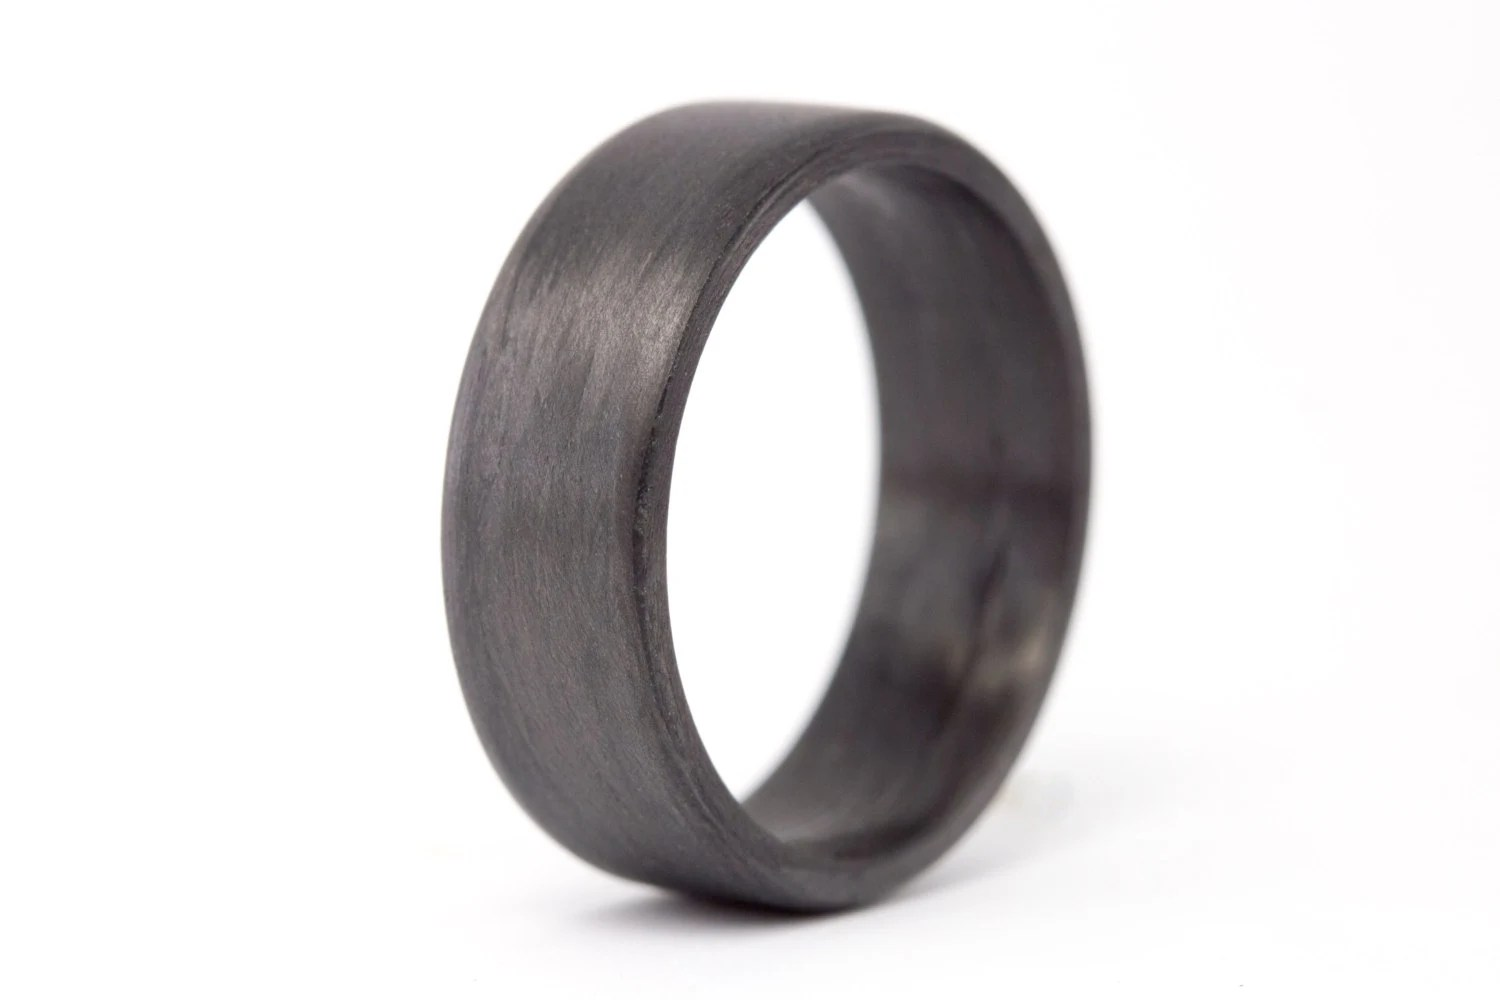 carbon fiber ring carbon fiber wedding bands Men s carbon fiber flat ring Unique and instrial black wedding band Water resistant very durable and hypoallergenic 7N